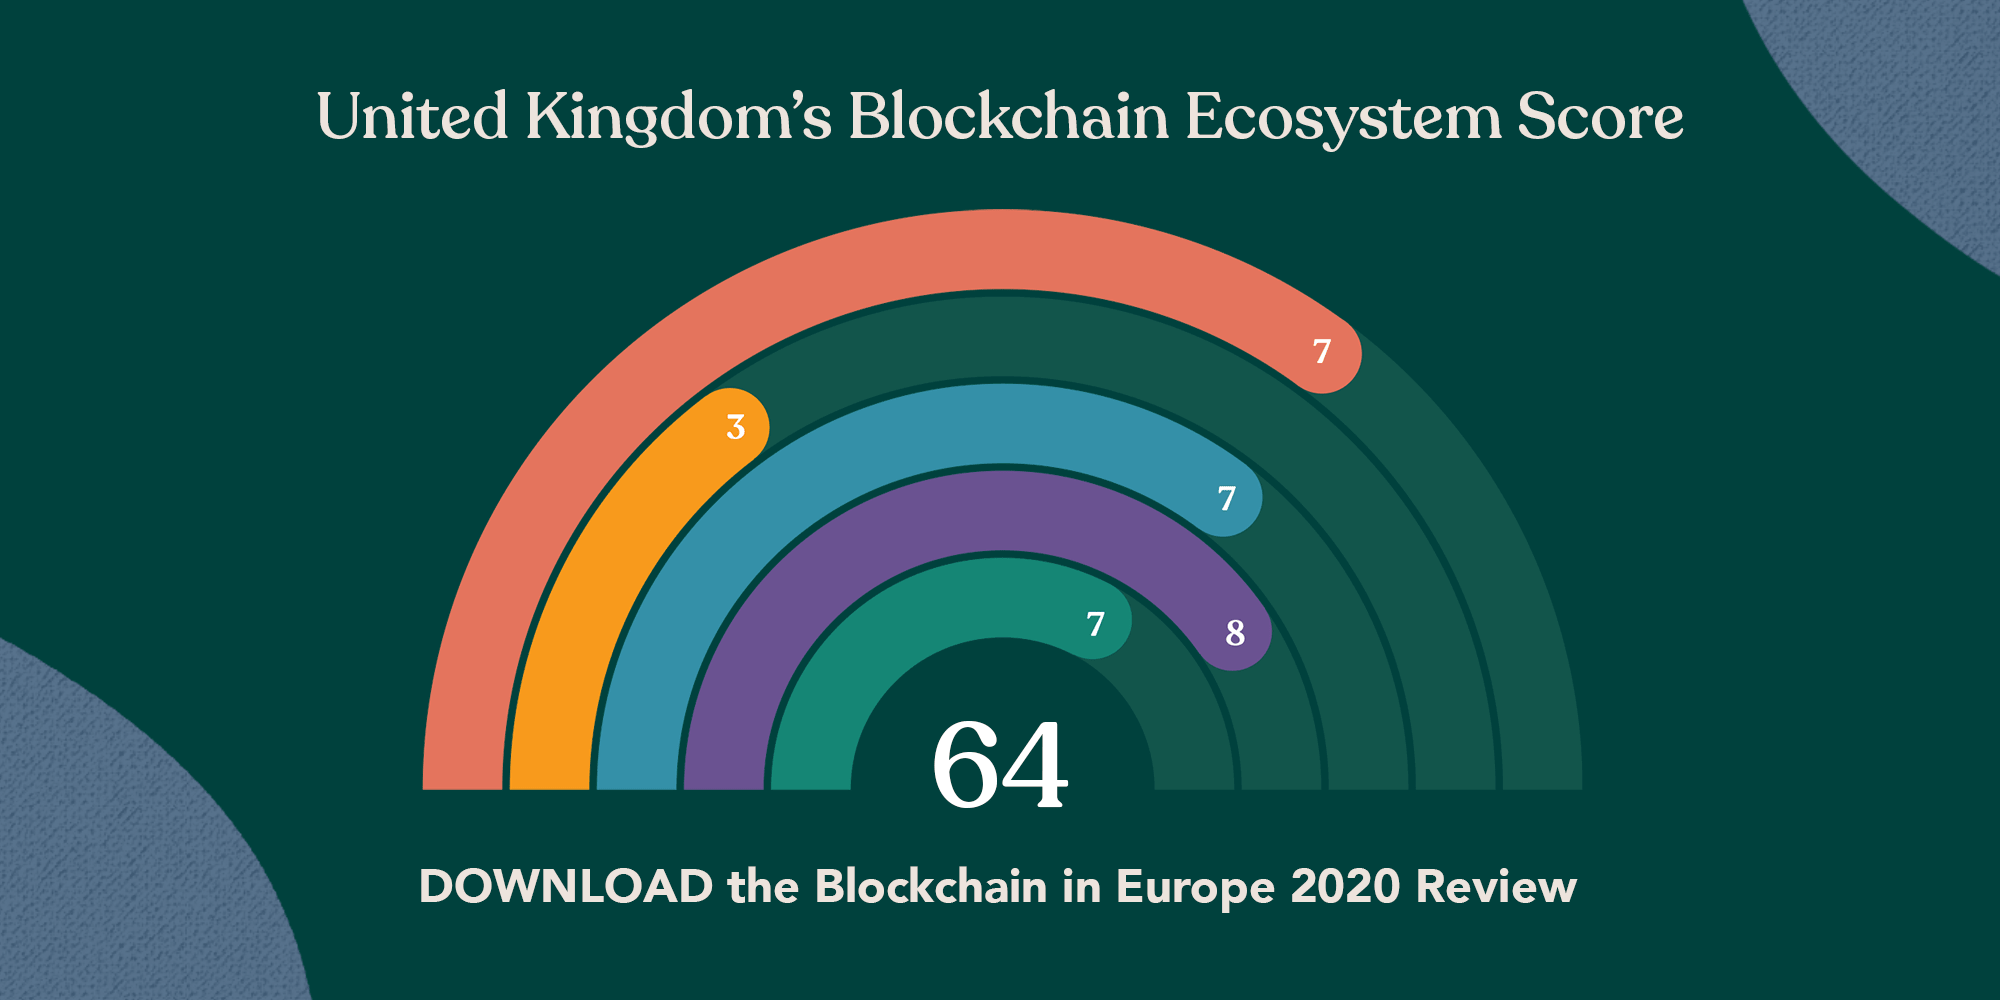 Blockchain Ratings Rainbow, with large 64 in the middle.